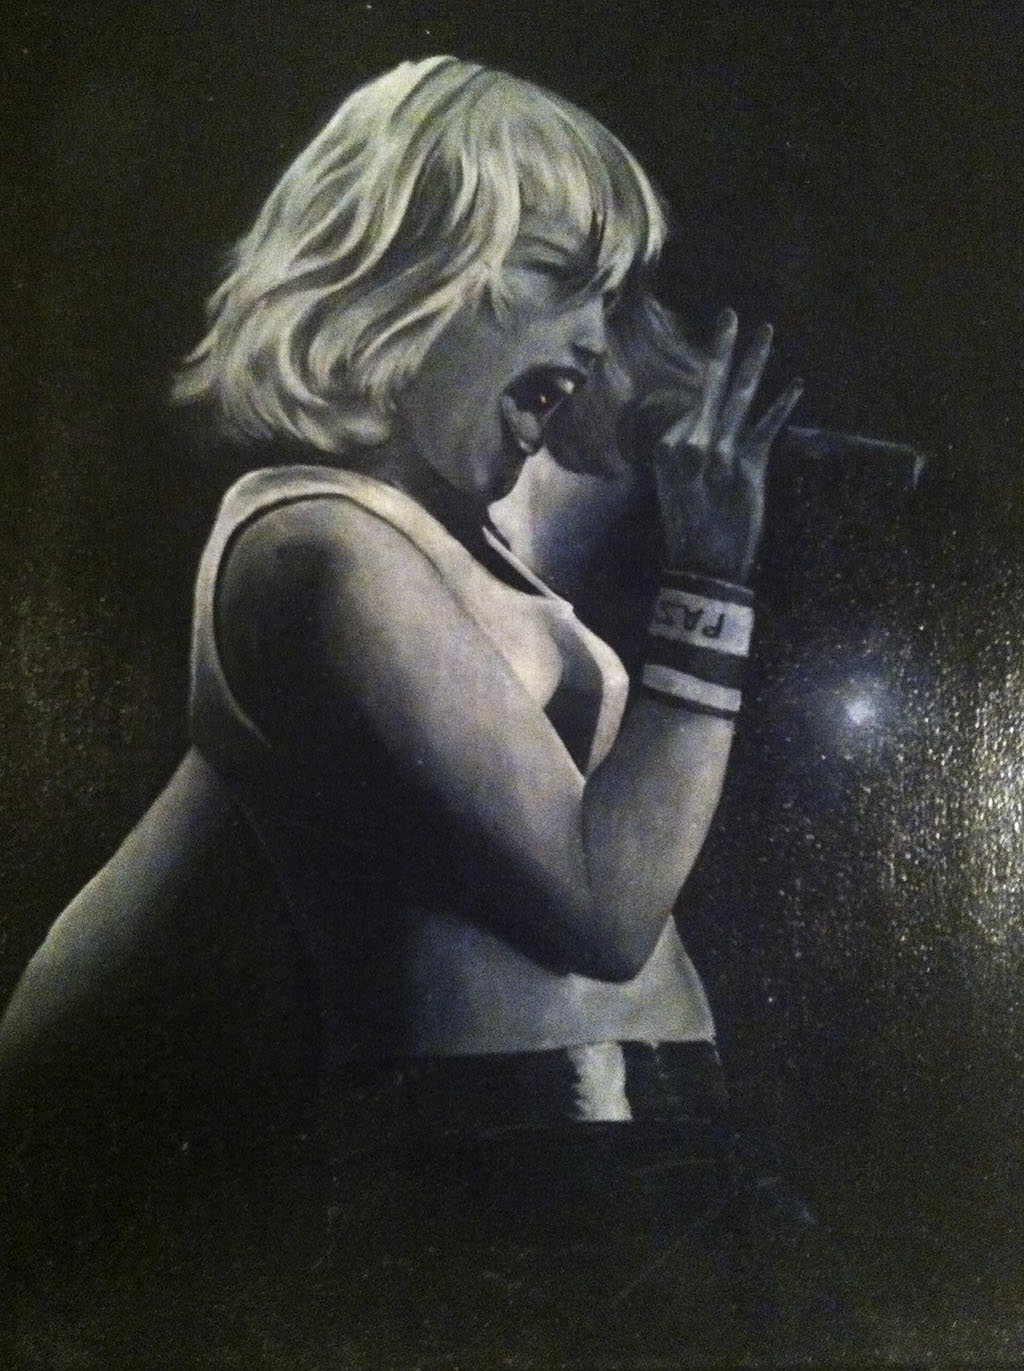 Gwen Stefani black and white oil painting painted by Perri Arts, Katy's sister.